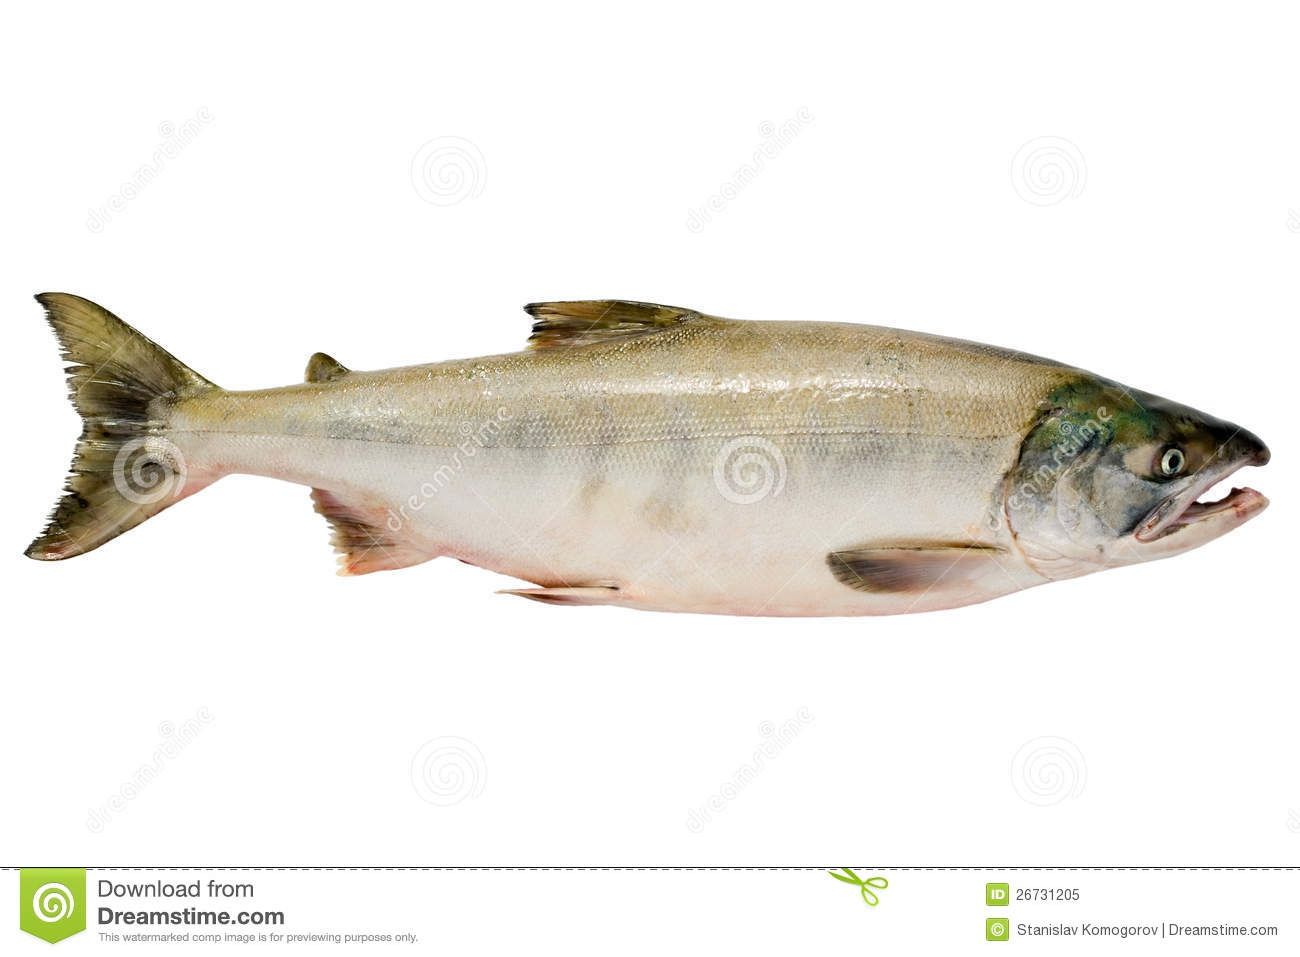 Why is sockeye salmon different from chum salmon Im interested in food quality